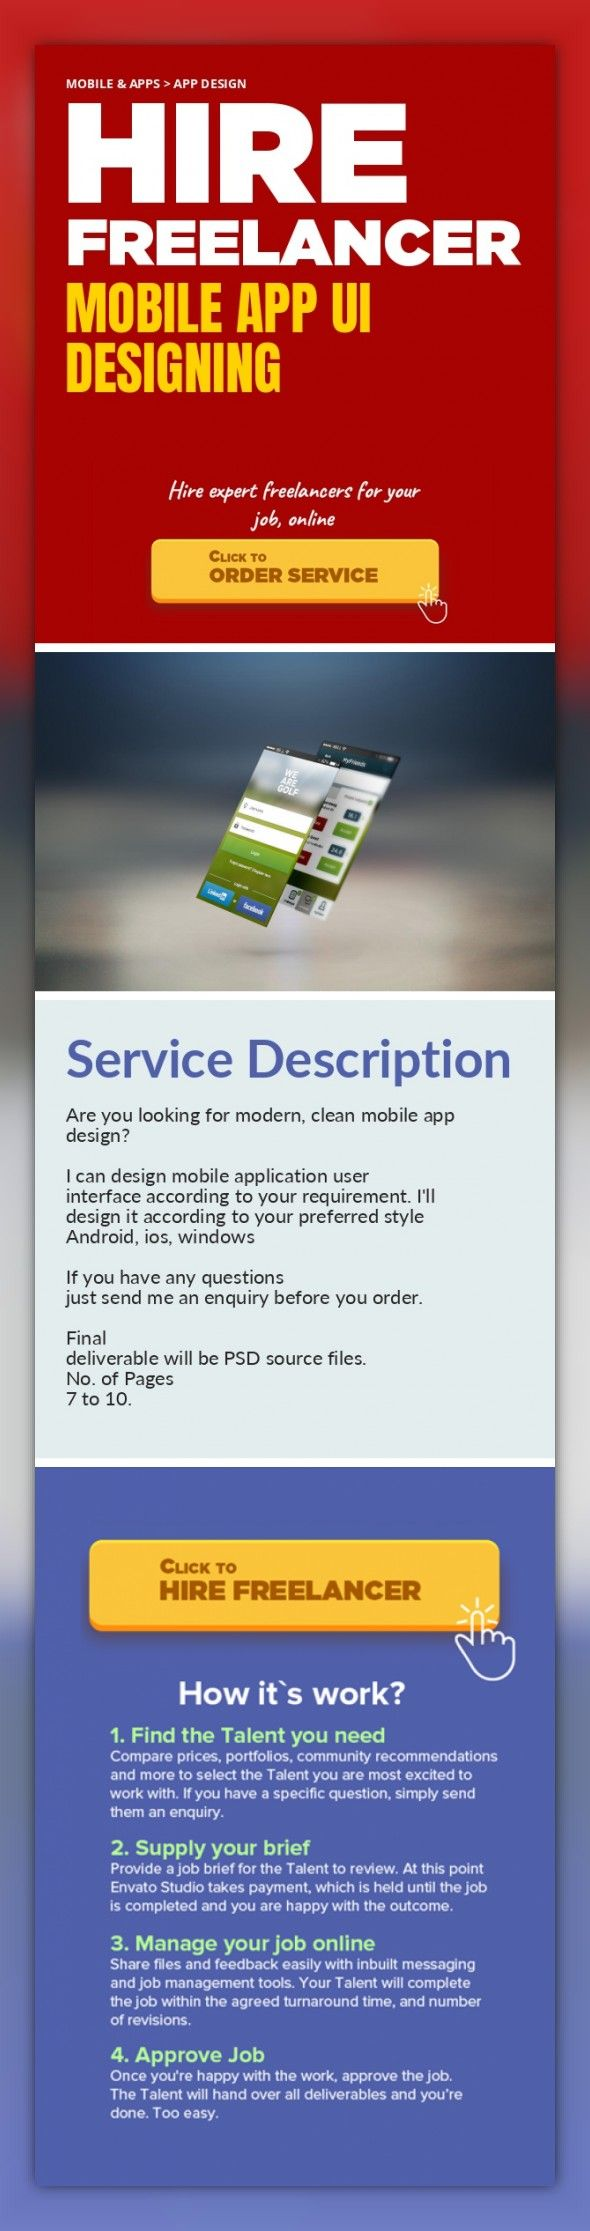 Mobile App UI Designing Mobile & Apps, App Design   Are you looking for modern, clean mobile app design?     I can design mobile application user interface according to your requirement. I'll design it according to your preferred style Android, ios, windows    If you have any questions just send me an enquiry before you order.    Final deliverable will be PSD source files.  No. of Pages 7 to 10.  ...